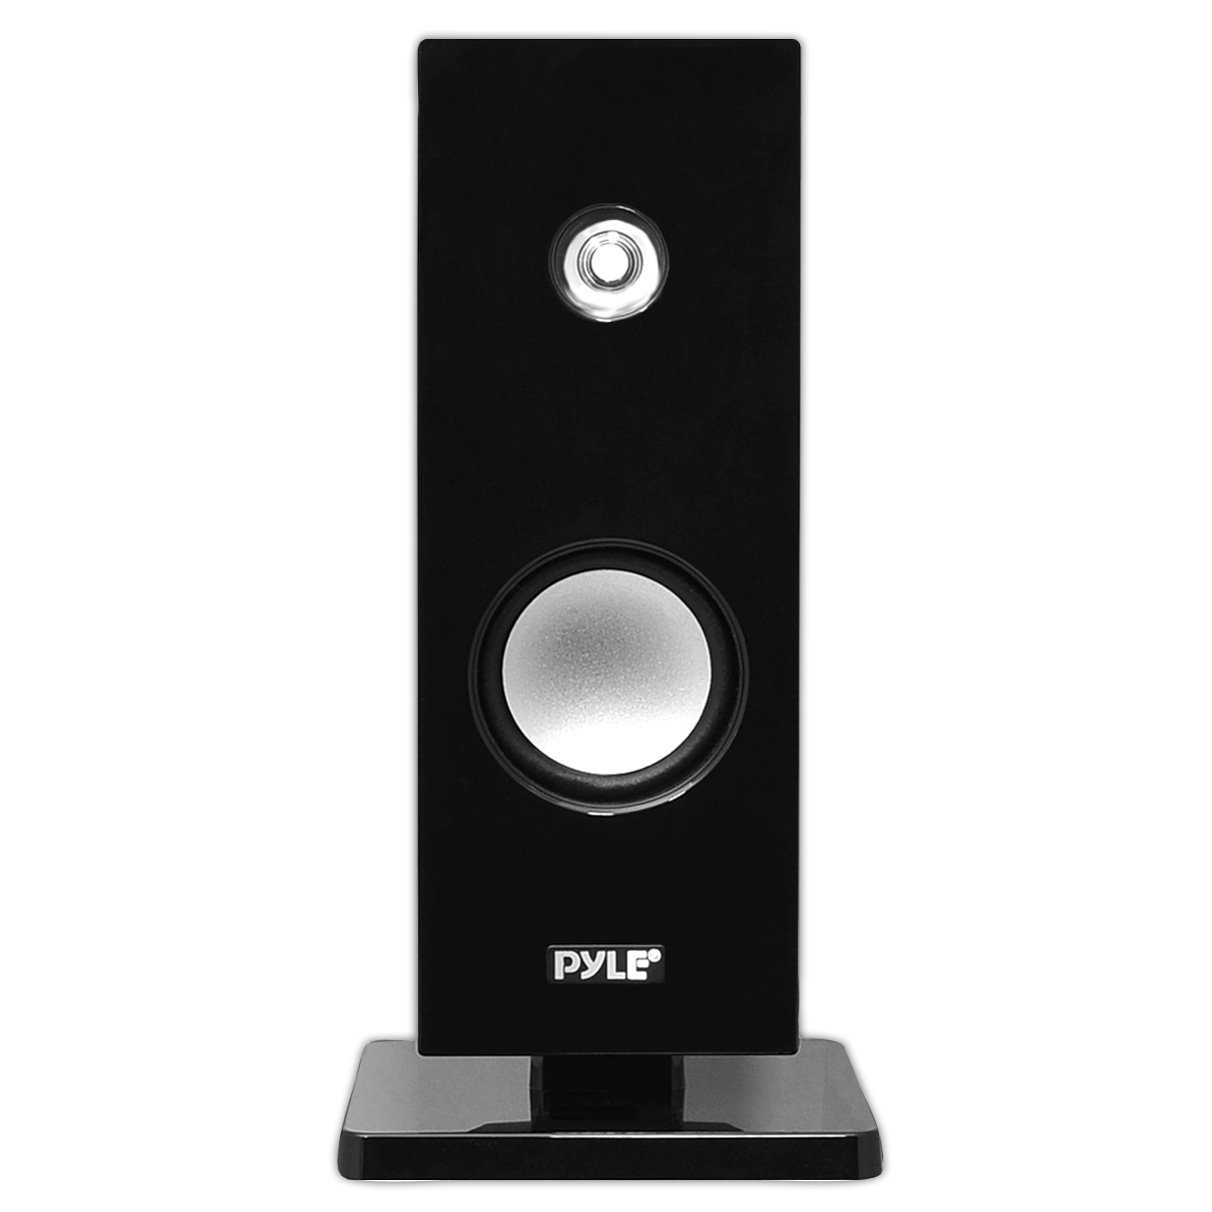 Pyle Pt798sba 71 Channel Home Theater System With Diagram Satellite Speakers Center Subwoofer And Bluetooth Audio